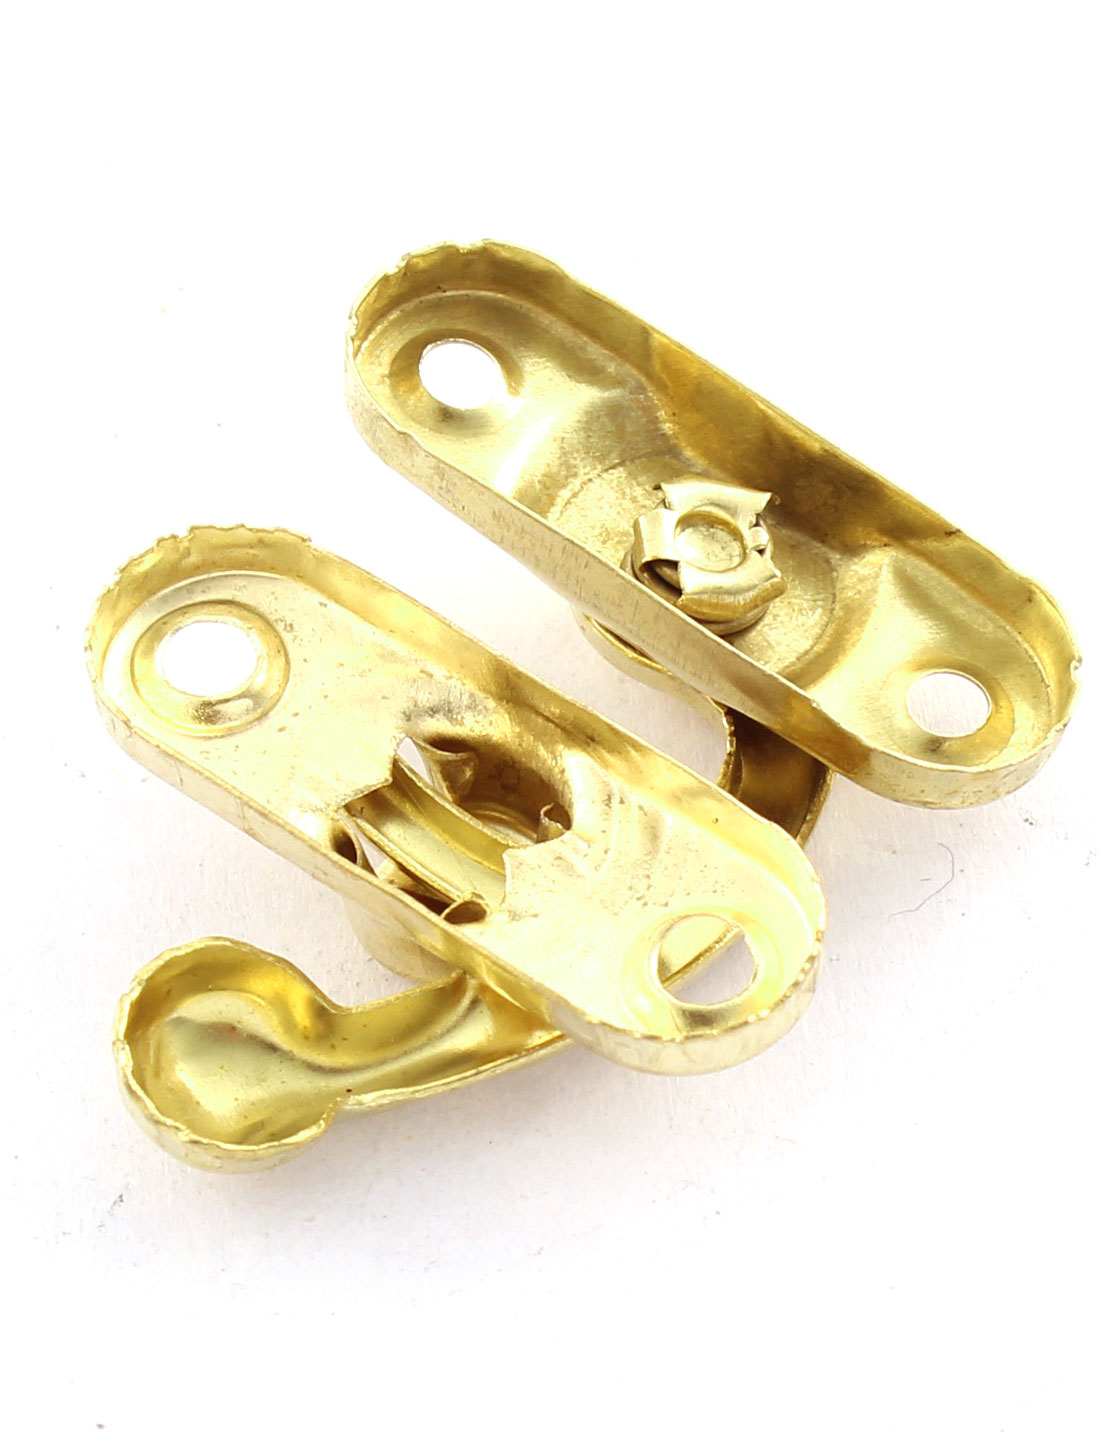 30 Pcs Left Swing Arm Closure Screw Fixing Packing Parts Cabinet Box Latch